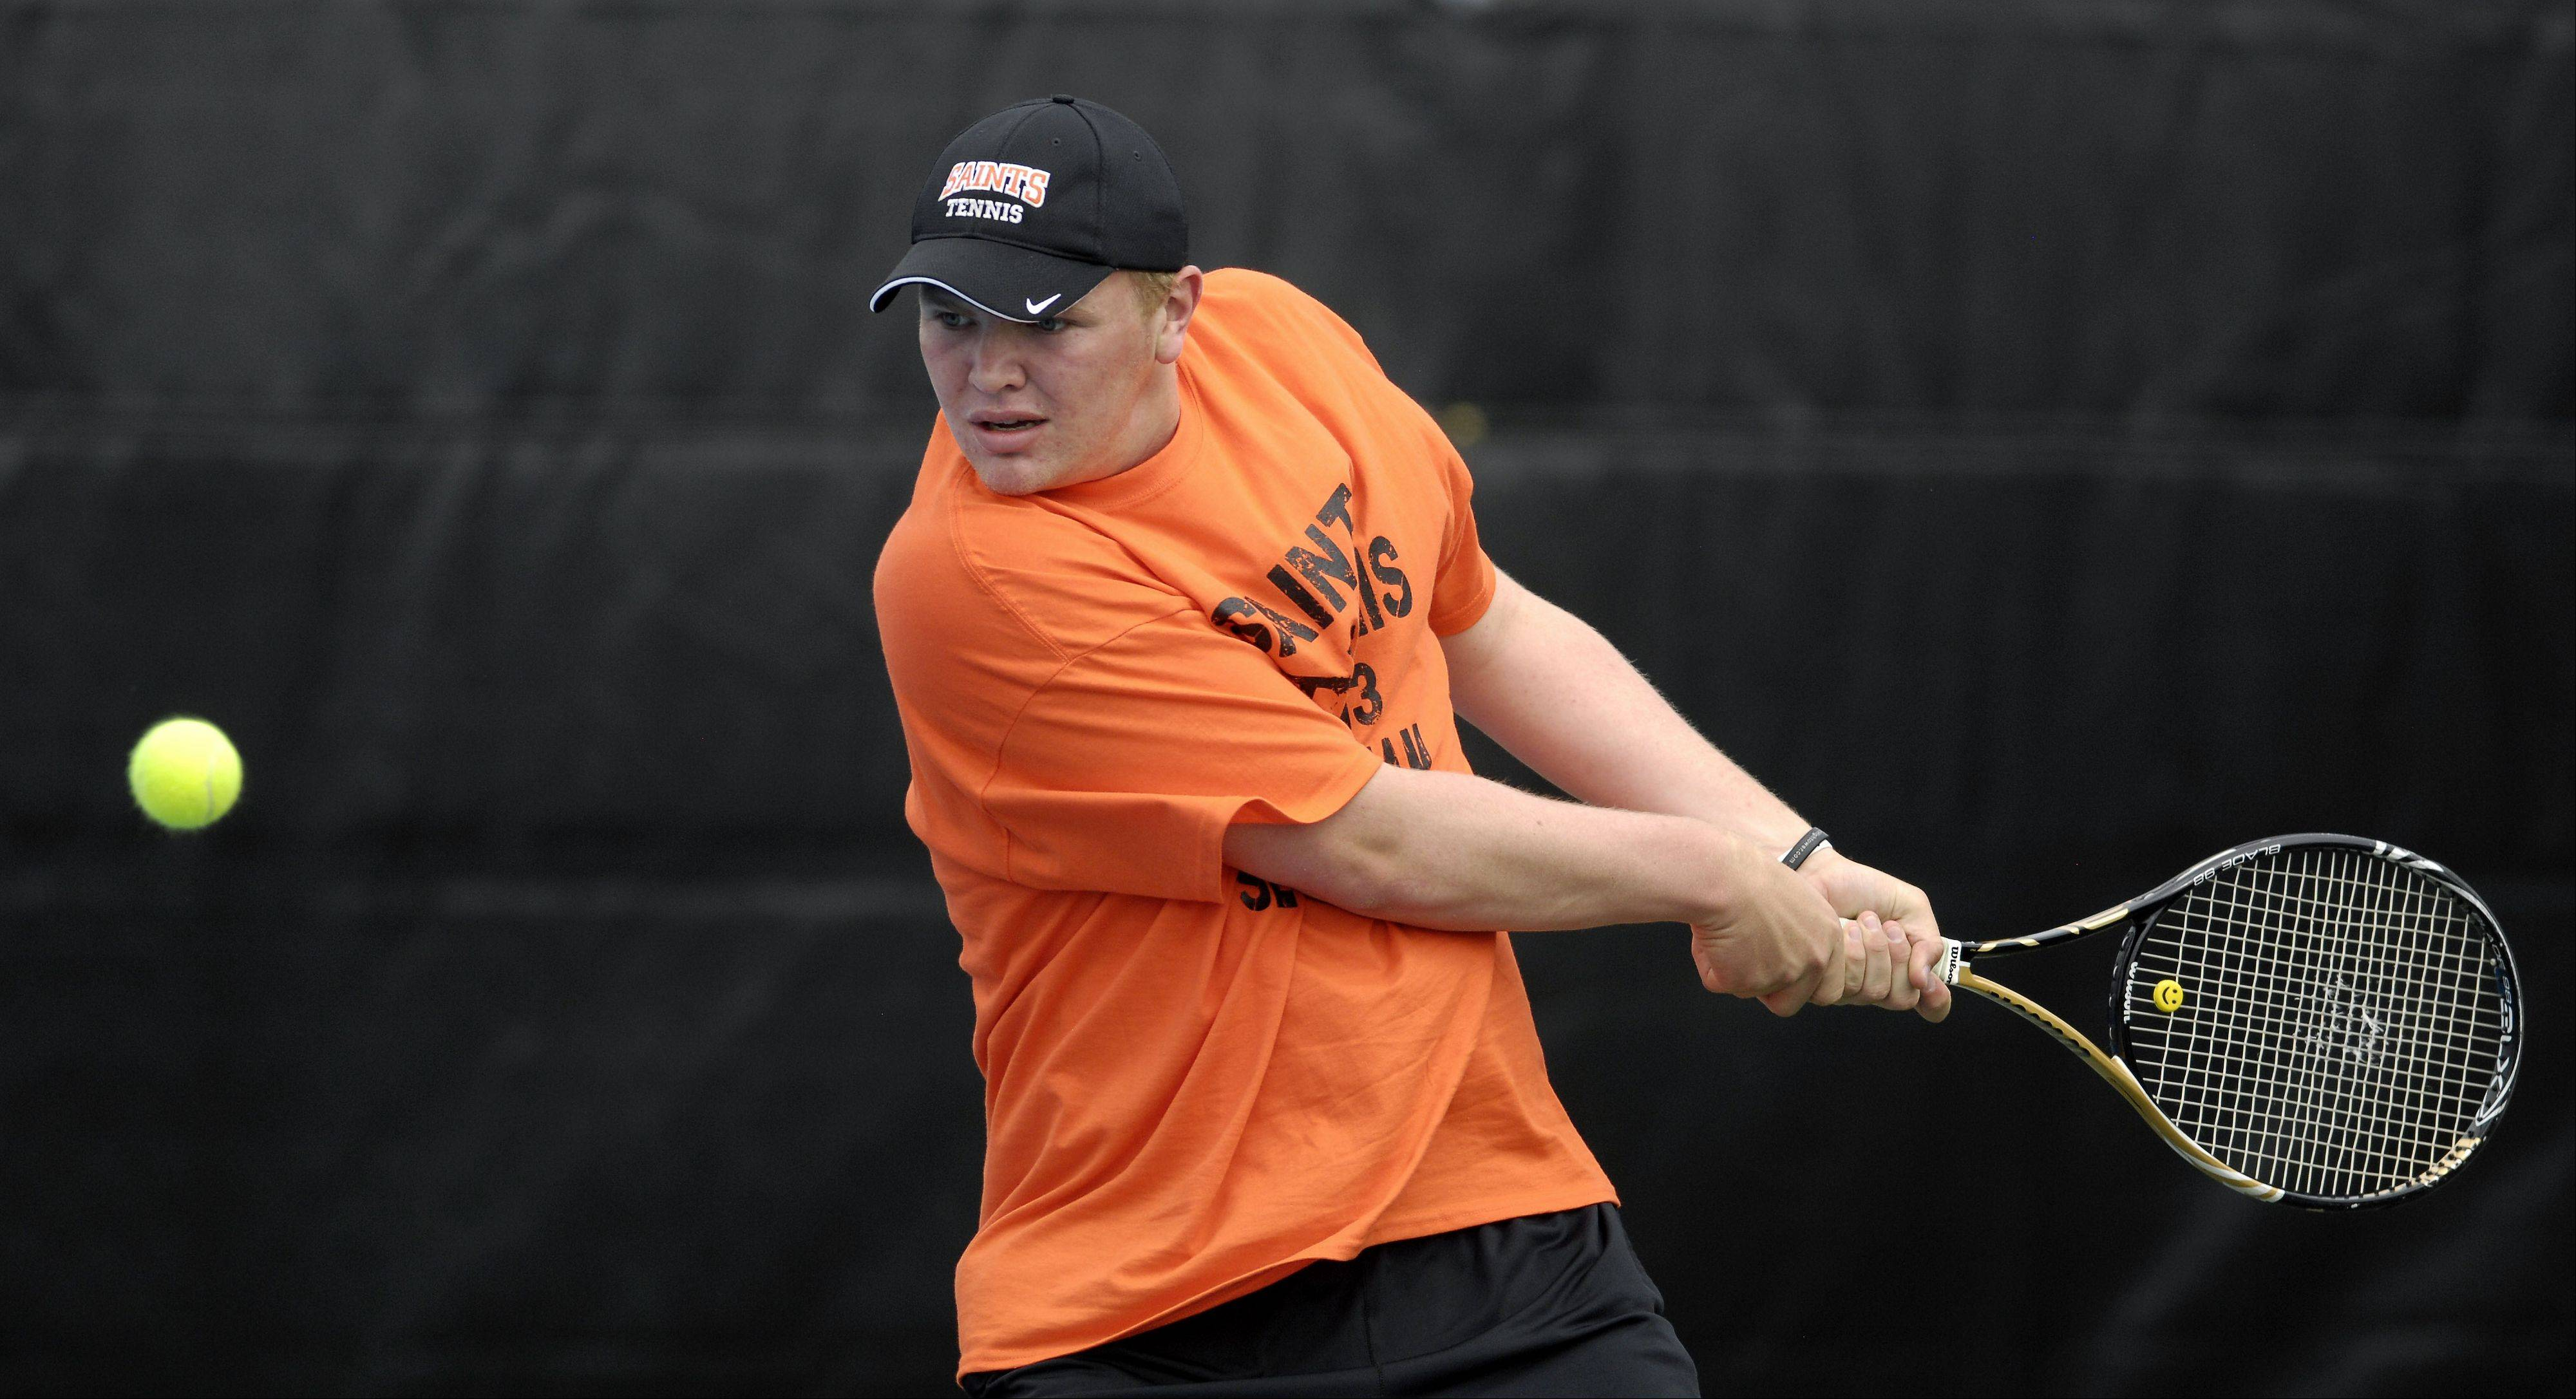 Rick West/rwest@dailyherald.comSt. Charles East's Jasper Koenen readies his backhand during sectional tennis action at St. Charles North High School Friday.